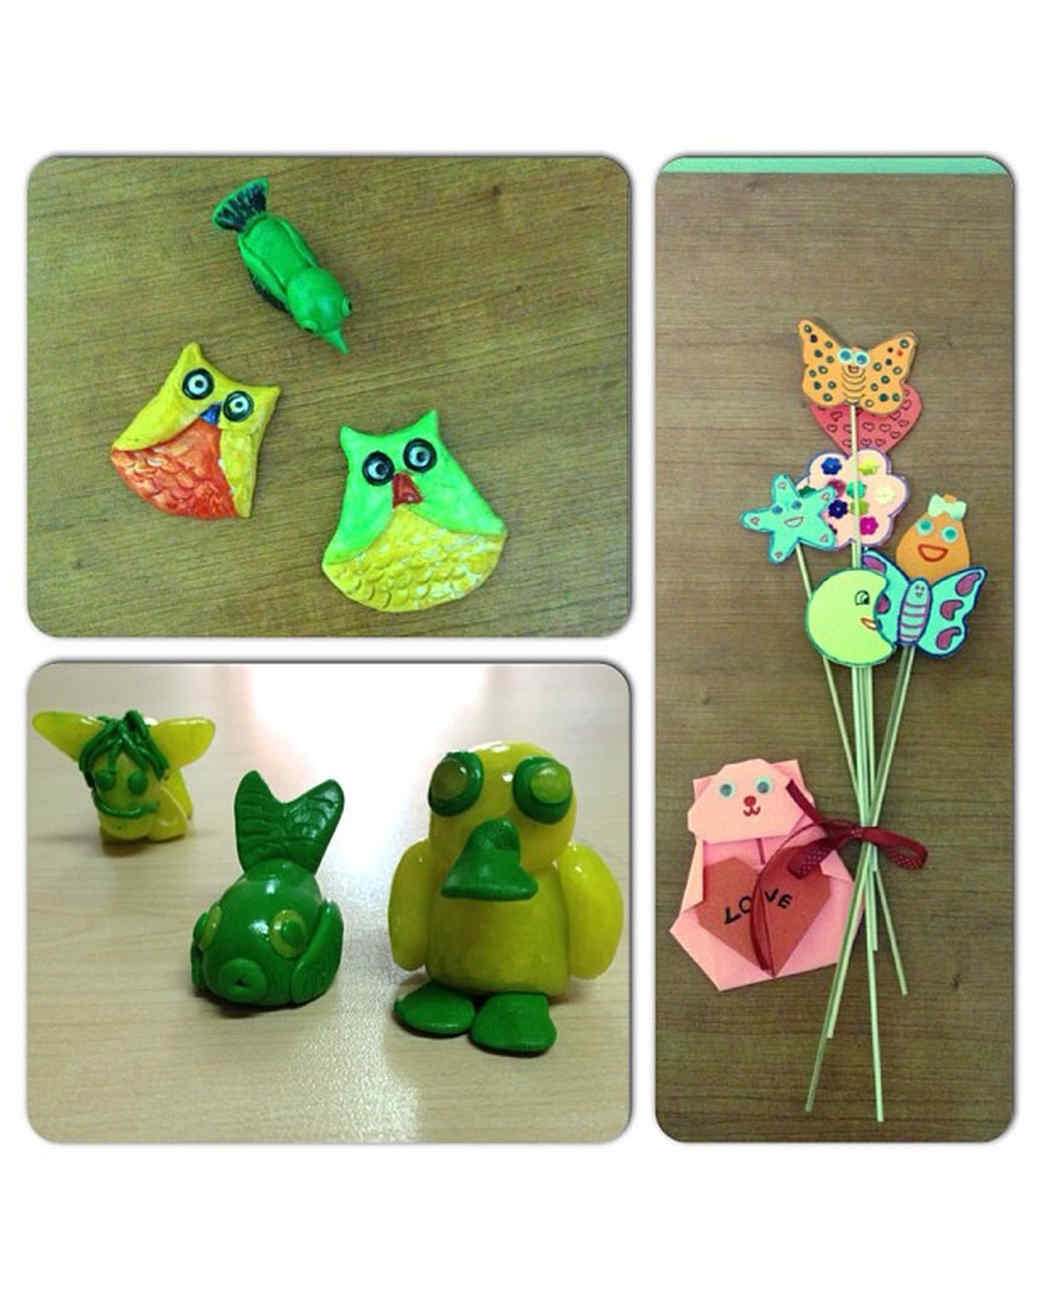 crafts-for-kids-submission-10-zelihakurt.jpg